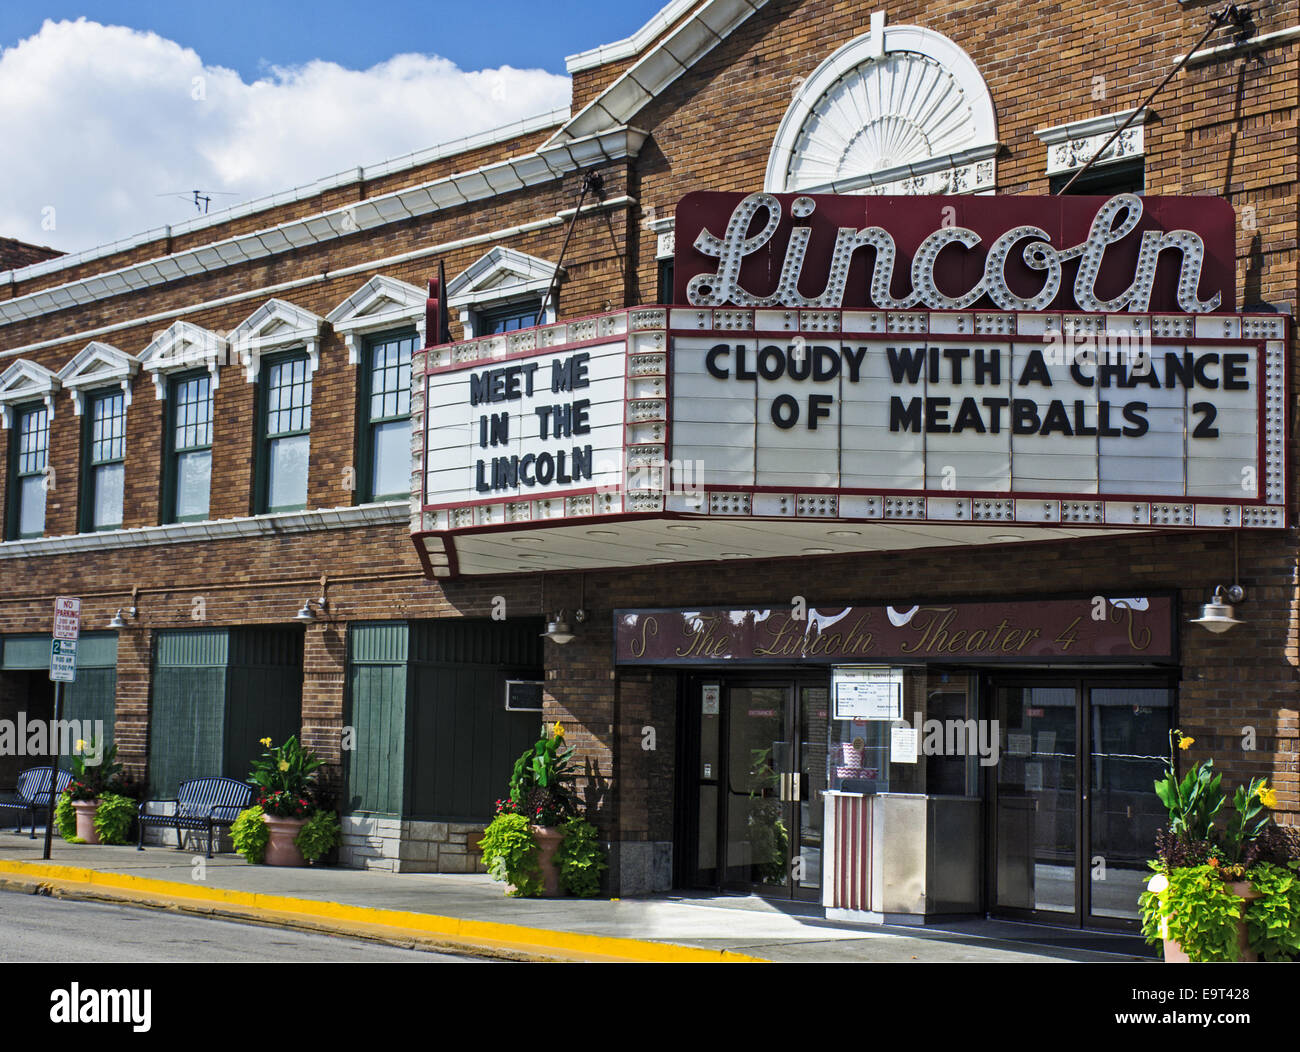 Lincoln Theater in Lincoln Illinois, a town along Route 66 - Stock Image